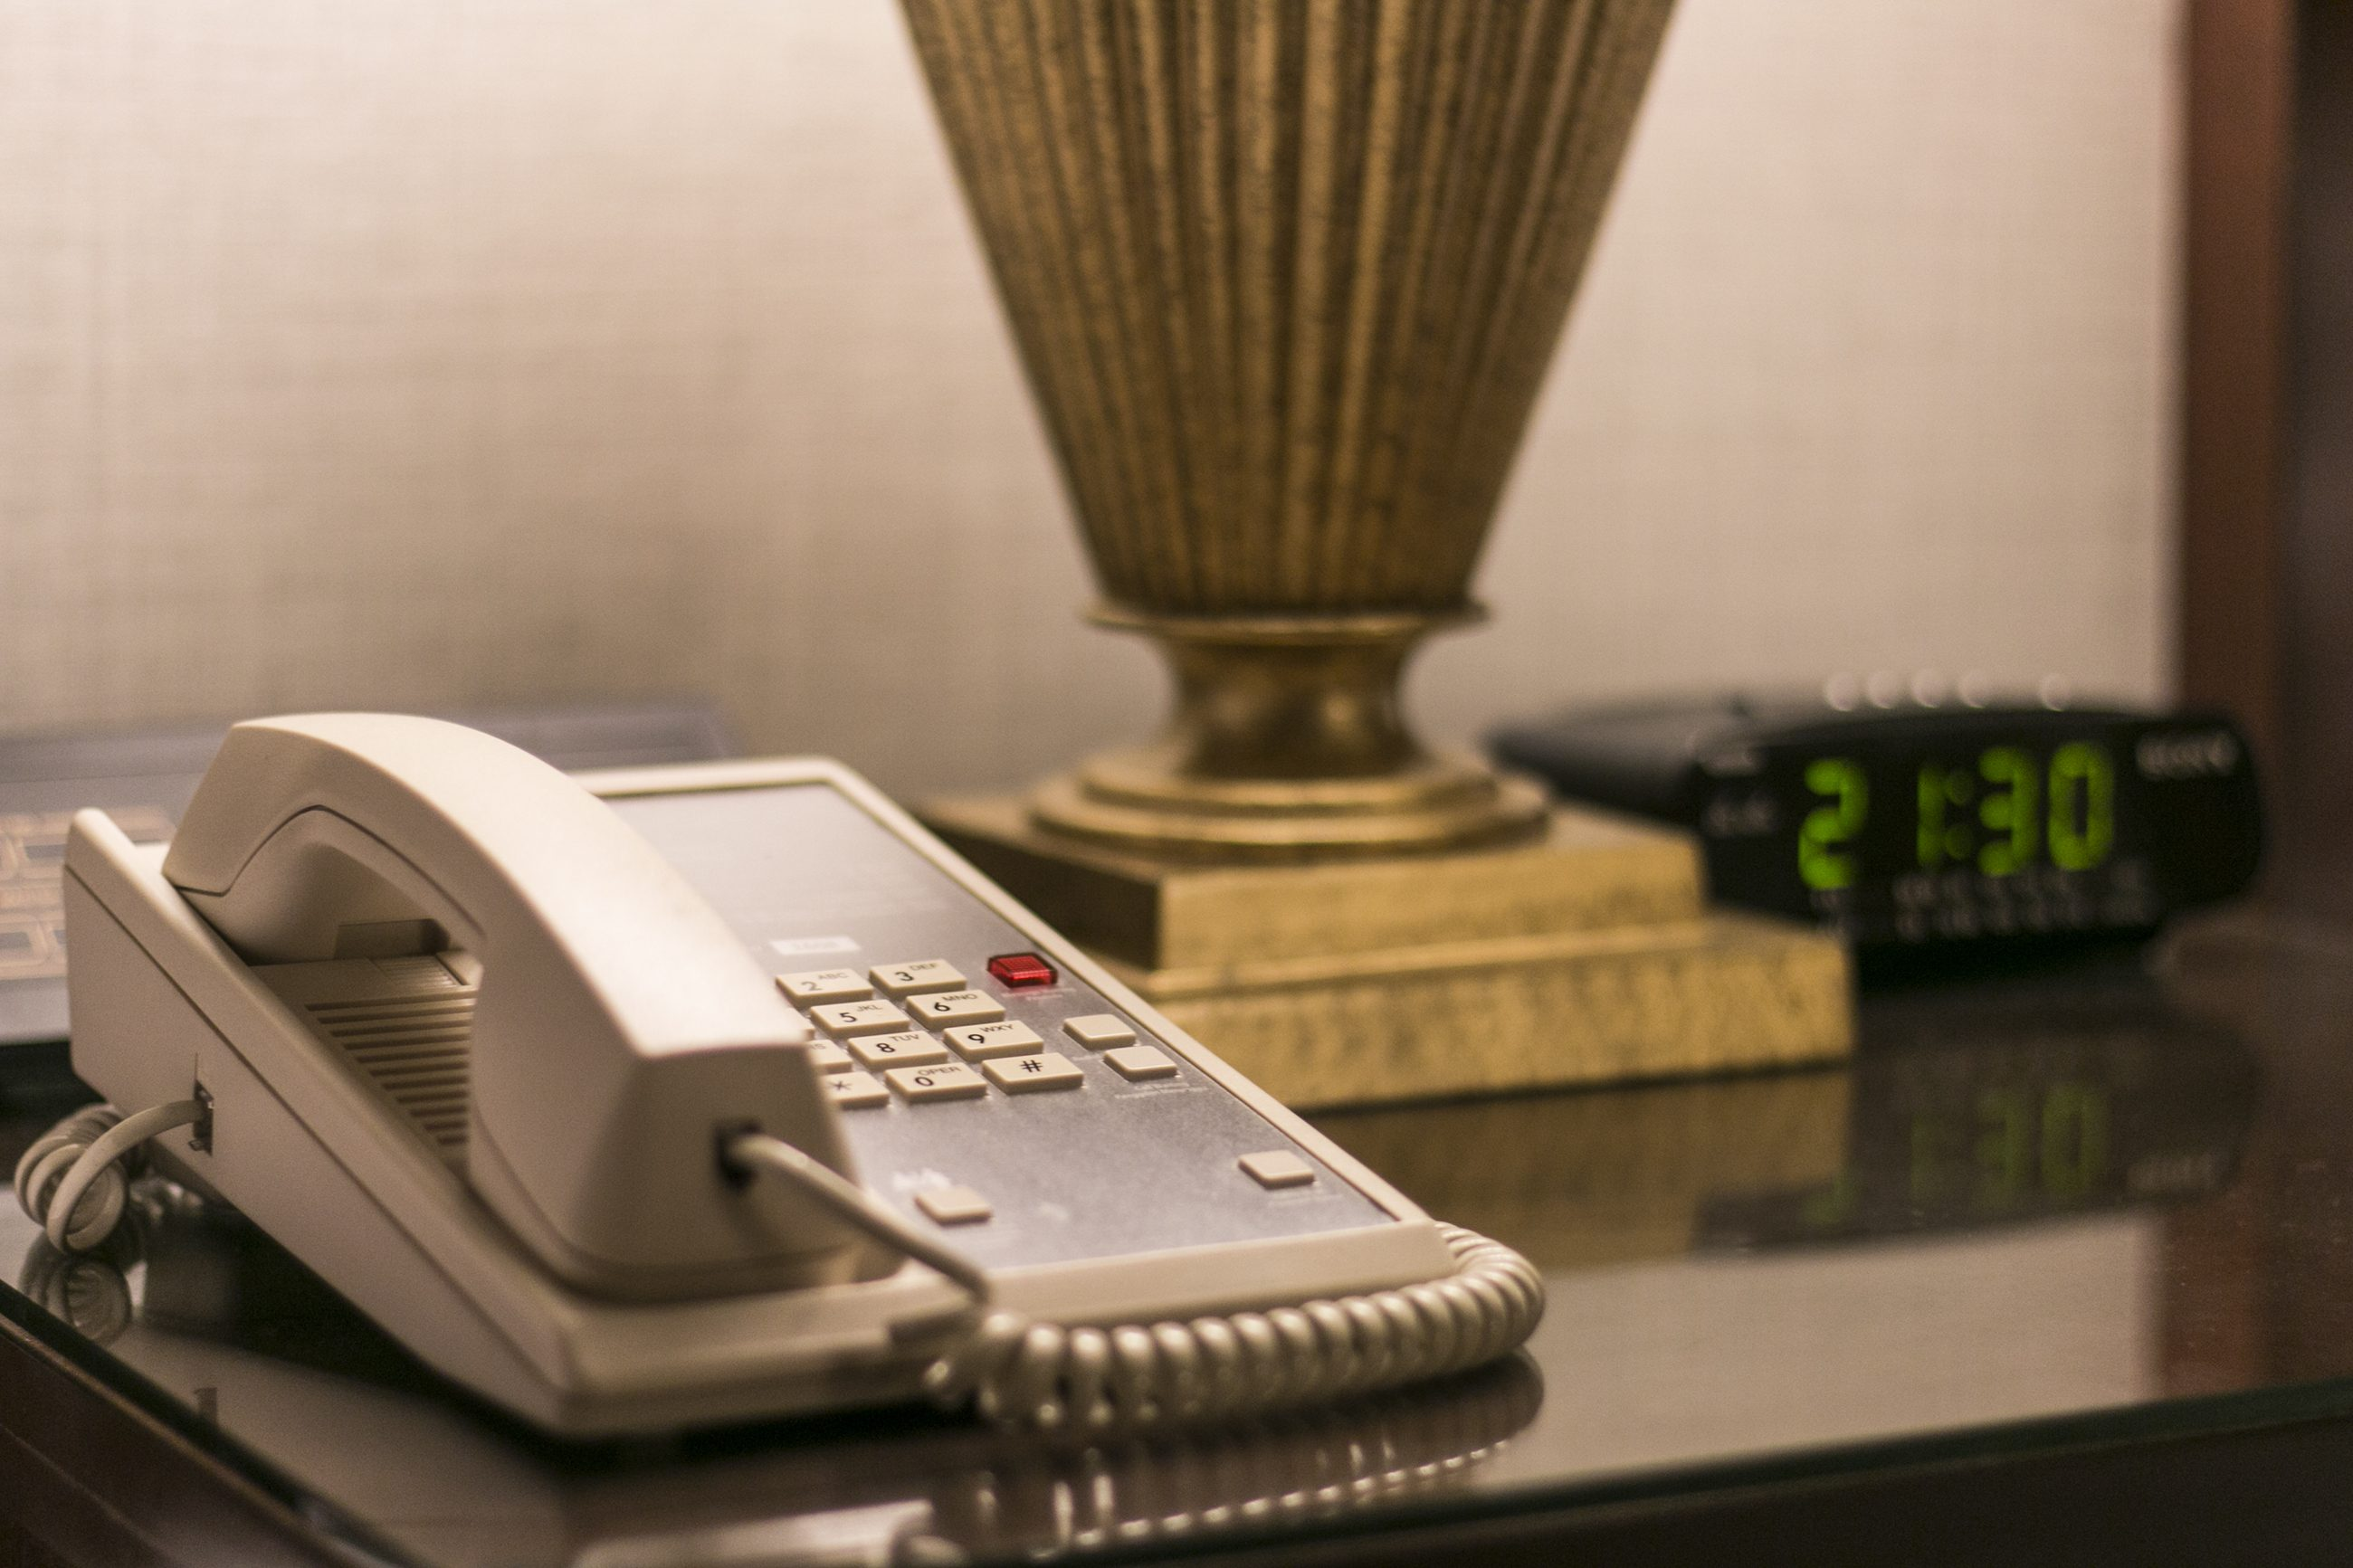 Telephone at hotel room sitting on bedside table along with the table lamp and alarm clock.